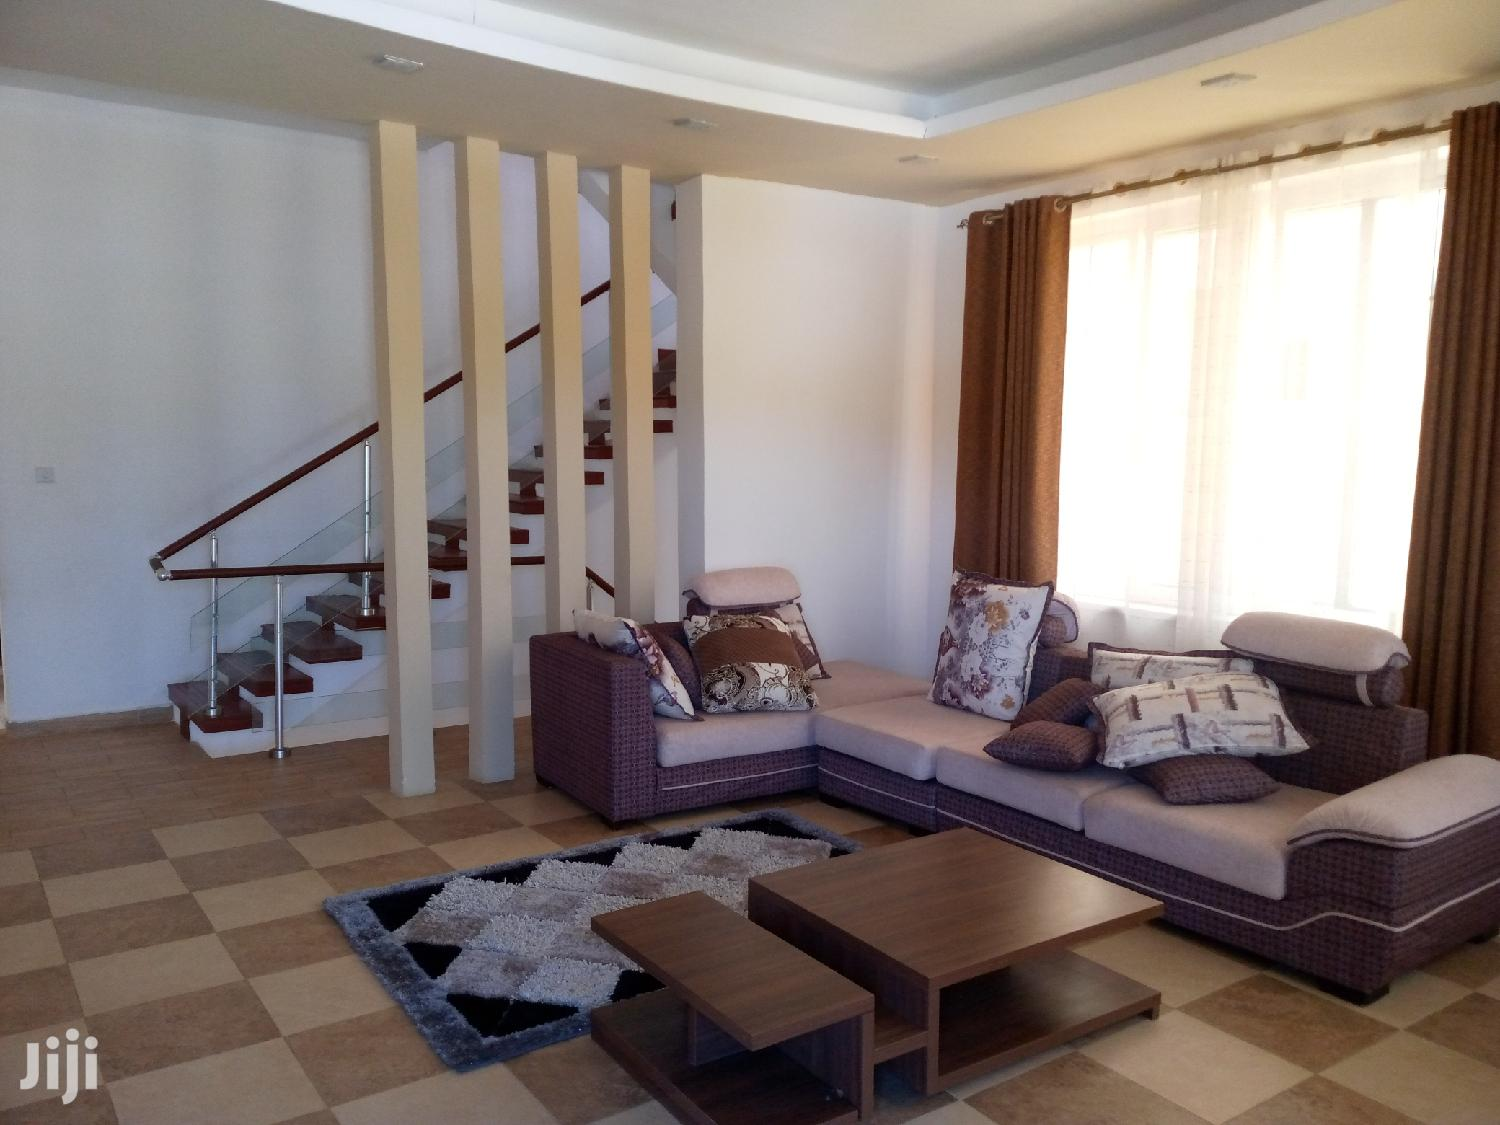 4 Bedrooms Villa At Mbezi Beach For Rent | Houses & Apartments For Rent for sale in Kinondoni, Dar es Salaam, Tanzania